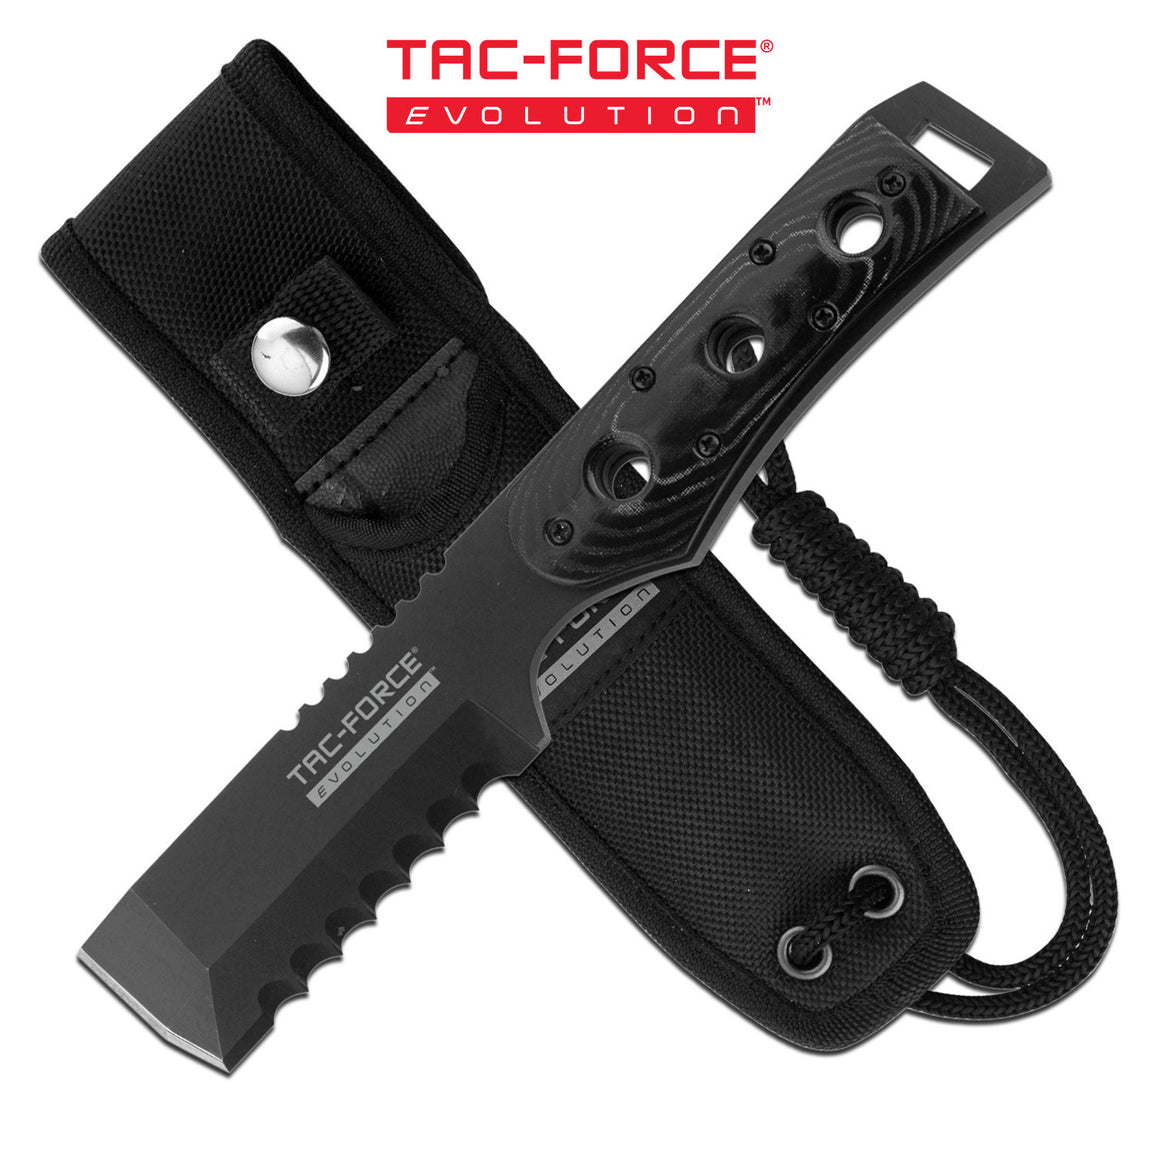 Tac-Force Evolution TFE-FIX016-BK Fixed Blade Knife